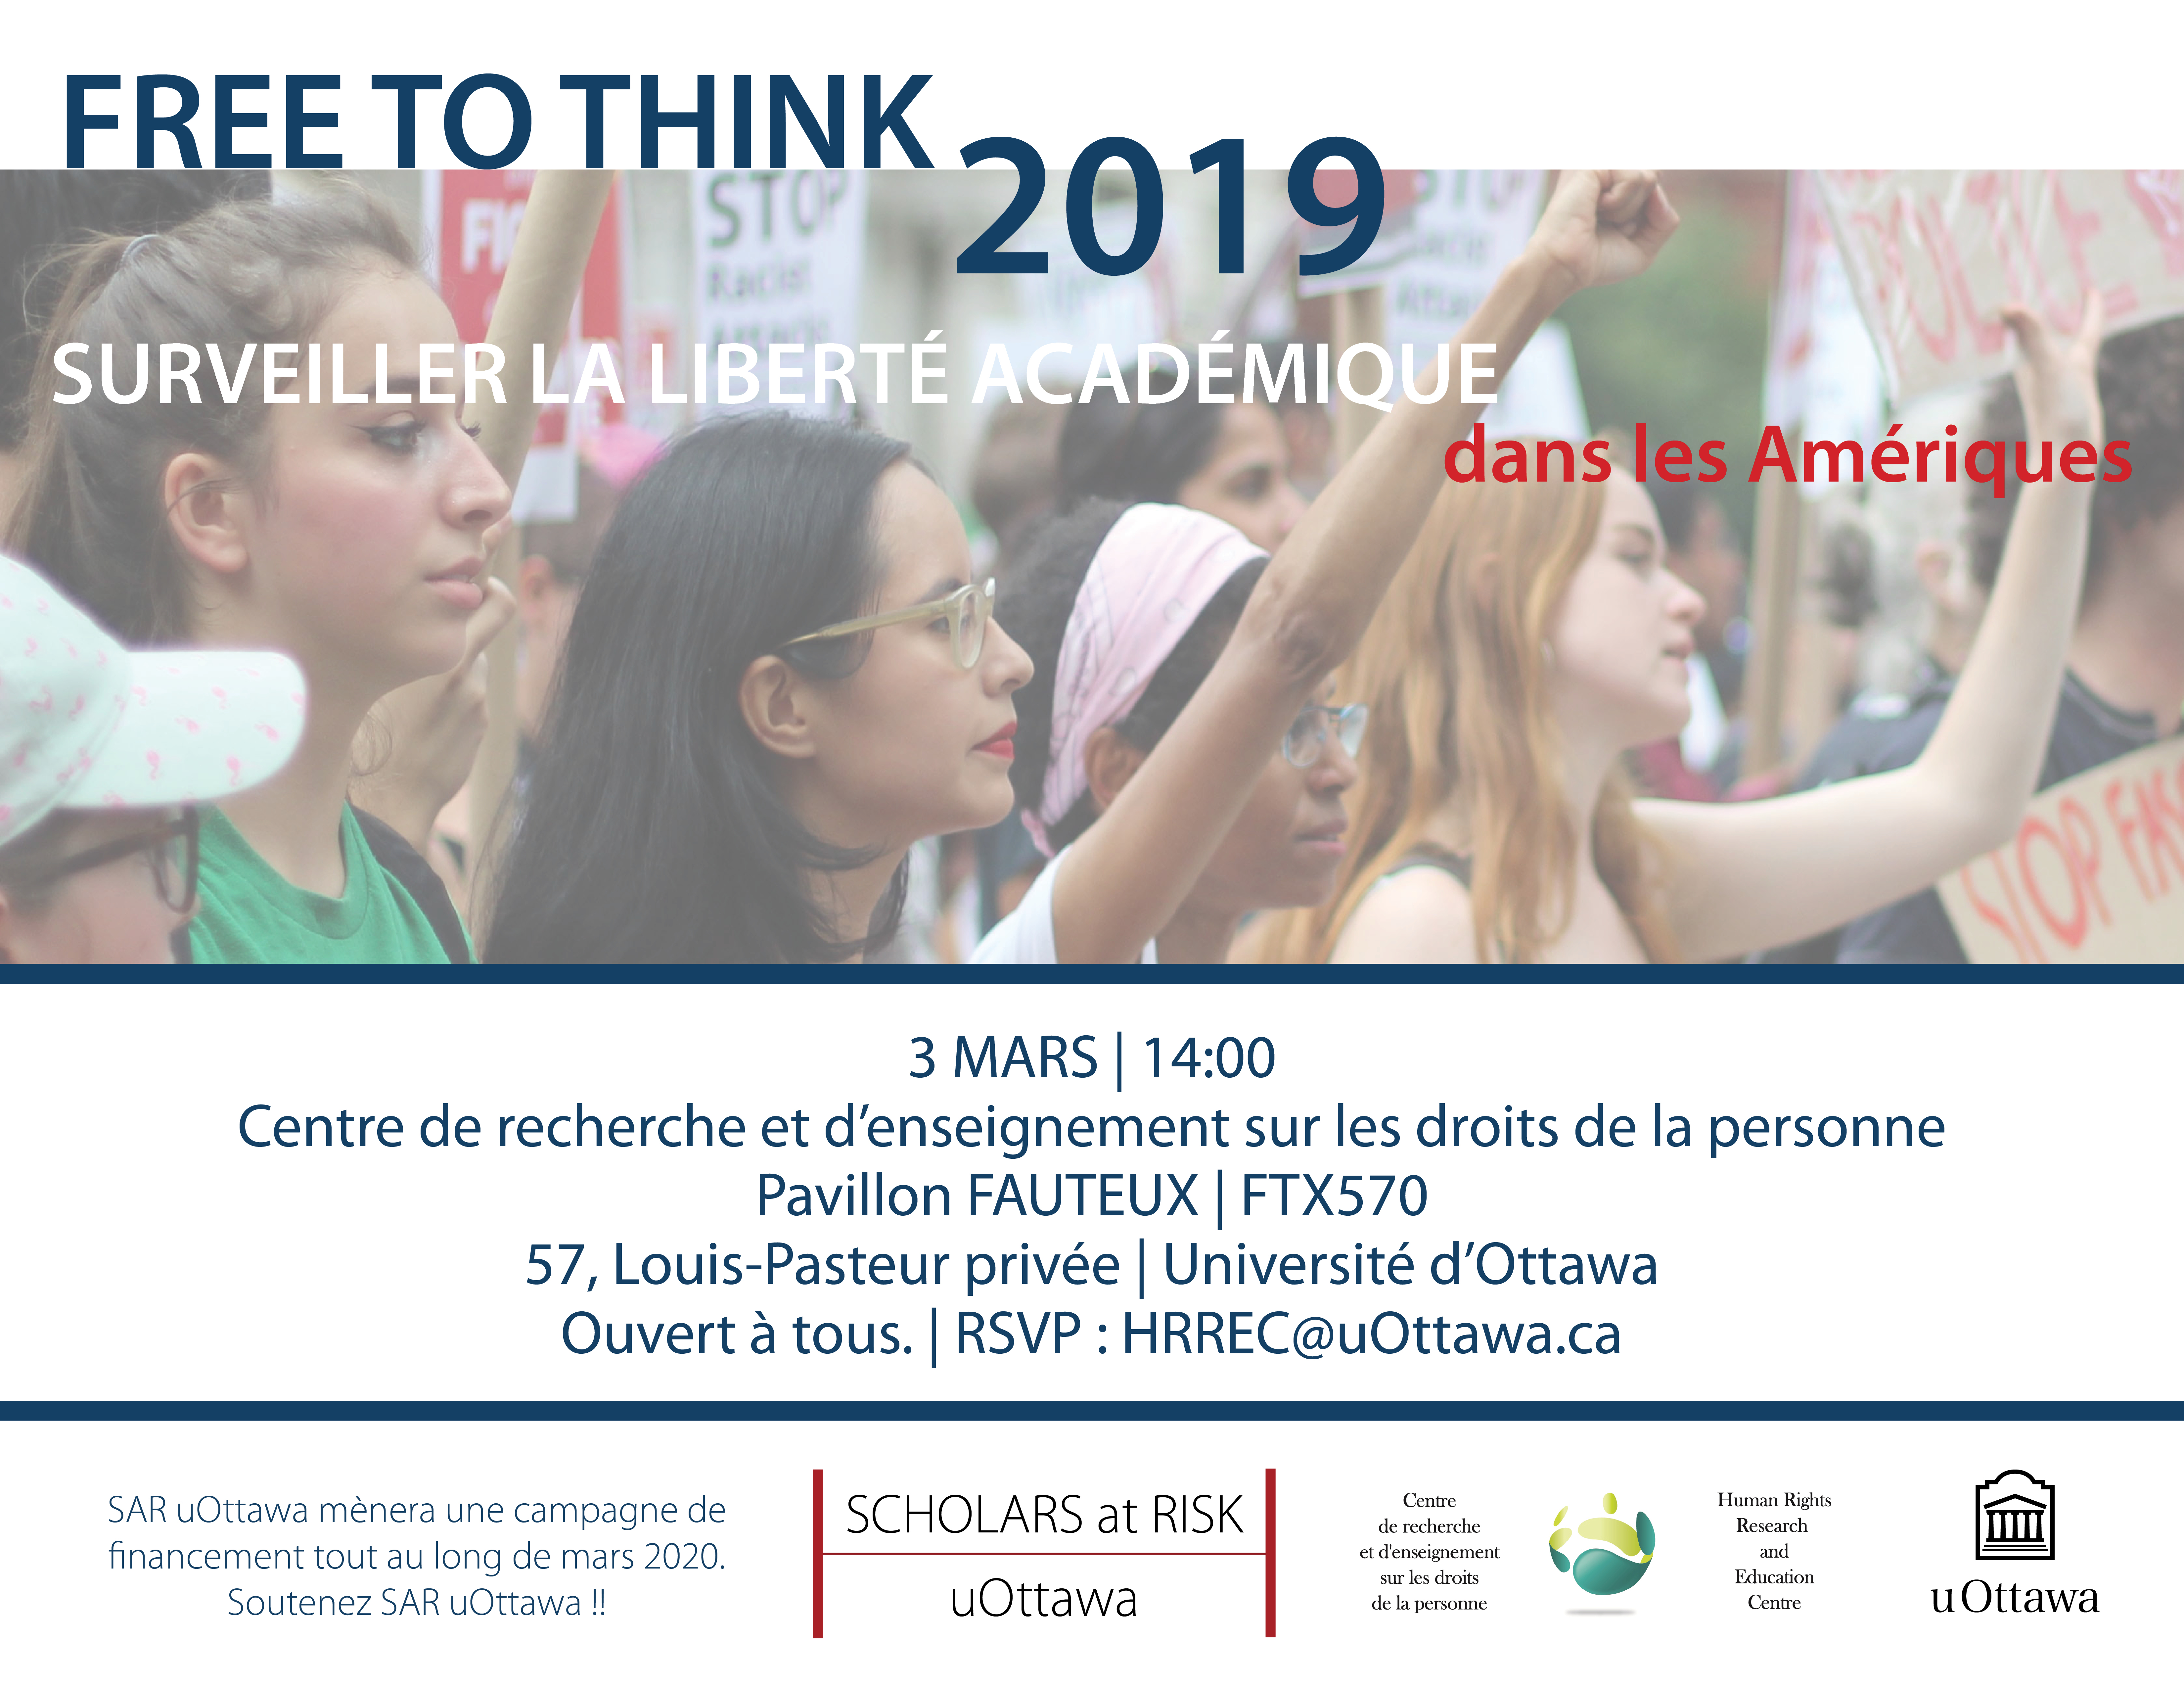 3 MARS - Événement - Free to Think 2019